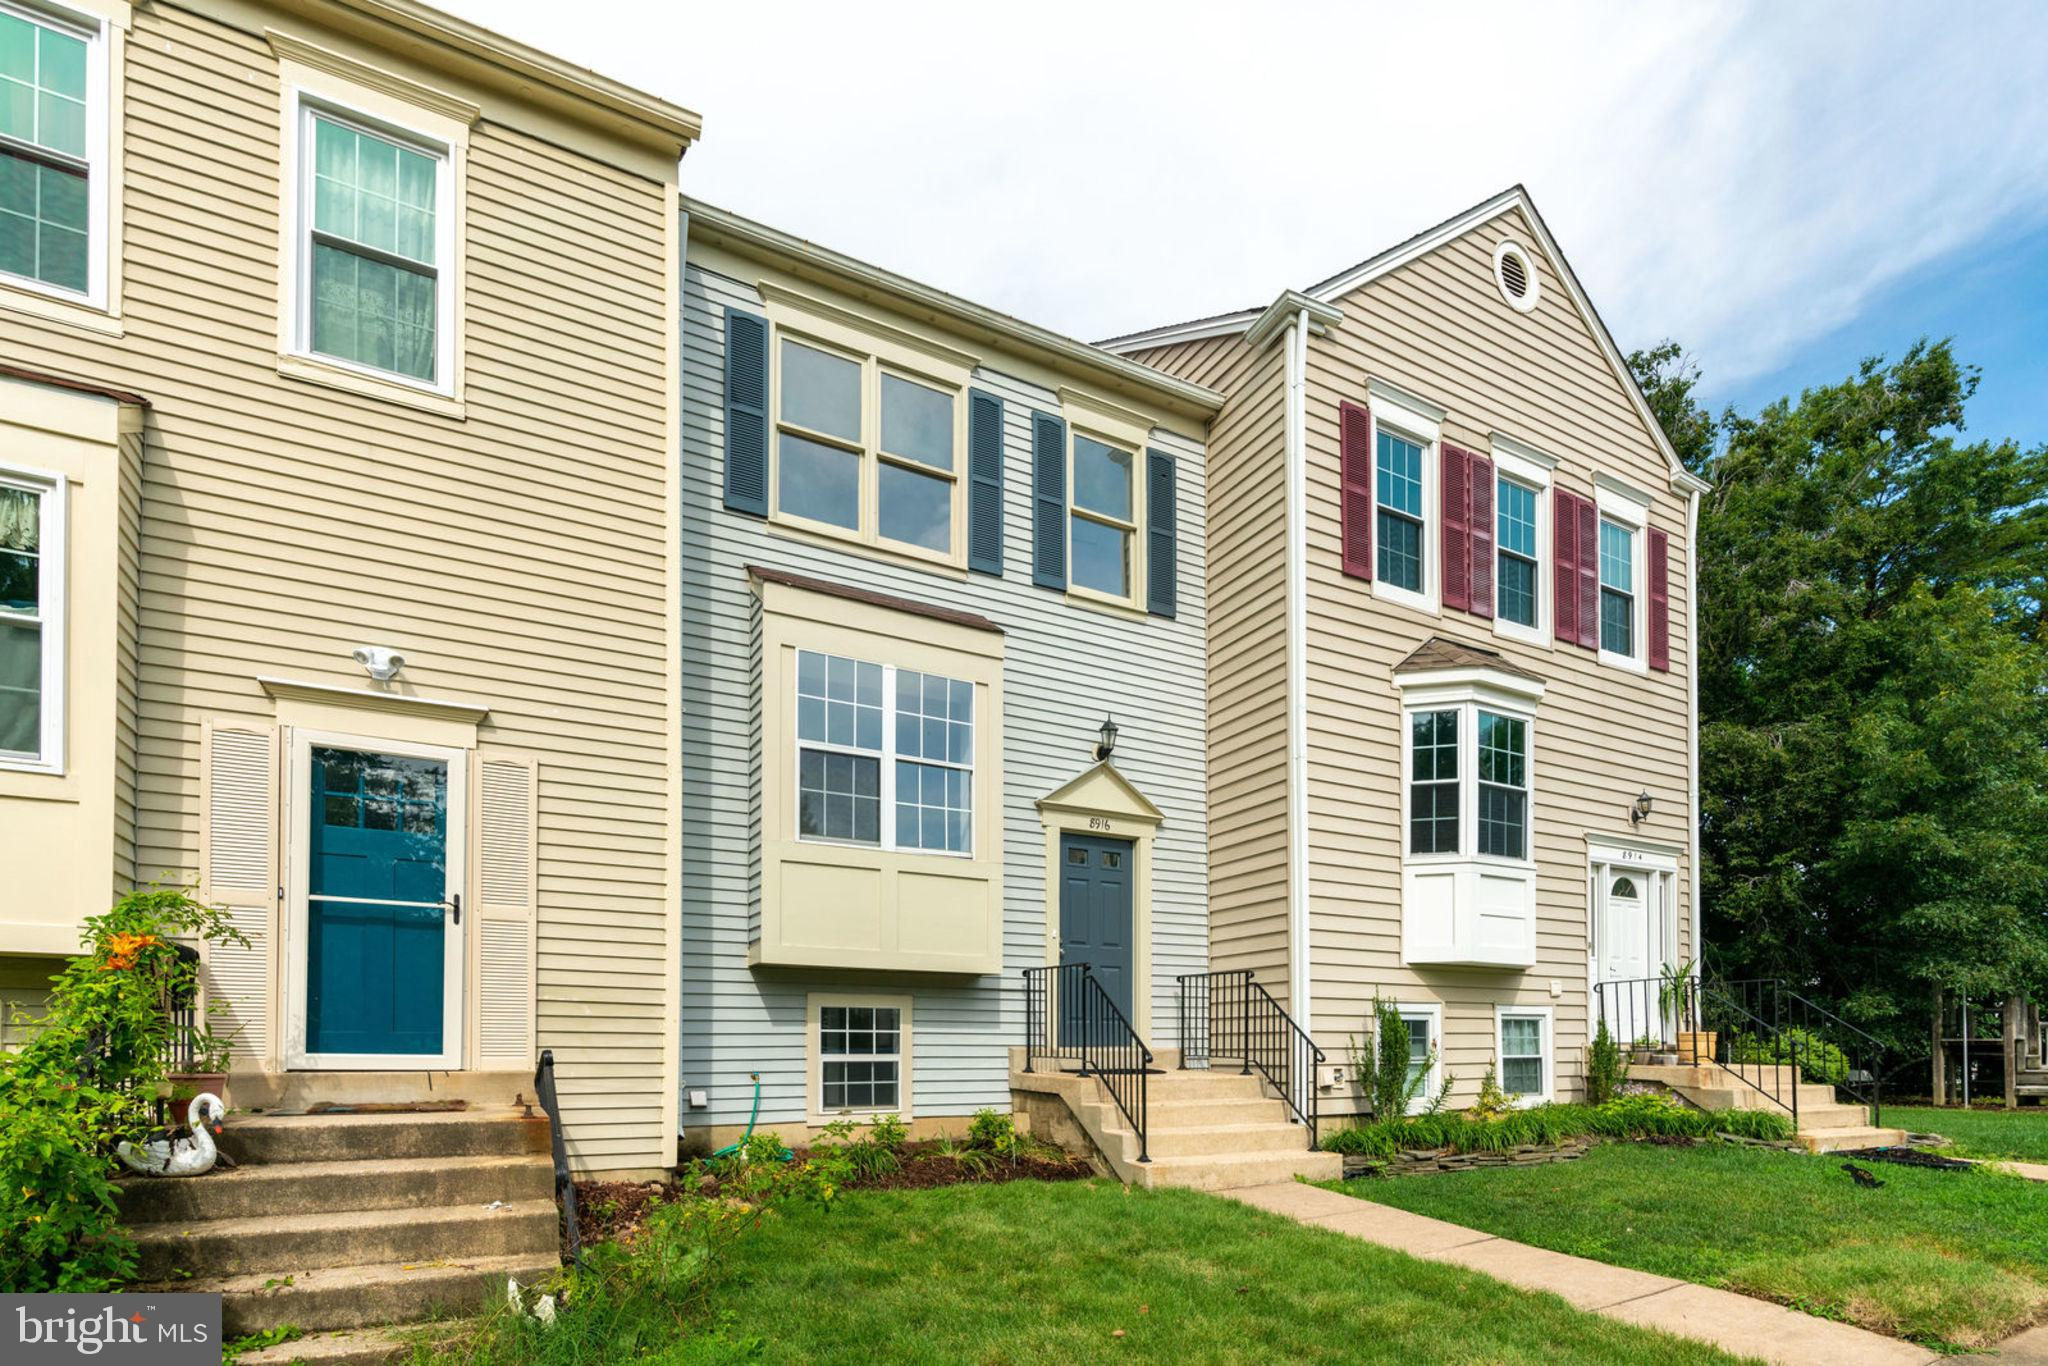 Freshly Painted Townhome with numerous Upgrades!  New Features include : berber carpet throughout, porcelain tile floors Kitchen/Foyer/upper lvl Baths, Vanities/fixtures,lights/mirrors in upper lvl Baths, Granite Counters/Sink/Light & Plumbing Fixtures in Kitchen, Sliding Glass Door in Basement, Washer & Dryer! Toilets 2016, HVAC & Condenser Replaced 2014. 2 Master Suites with Private Bathrooms on Upper Level! Finished Basement with Full Bath and walk-out to backyard could be configured for 17'x11' BR!  Basement also features Laundry, & Storage! 2 Reserved parking spaces near front walkway, PLENTY of visitor parking within 100' of front door. WALK TO Lorton Station VRE, Restaurants, Shops, & Offices!